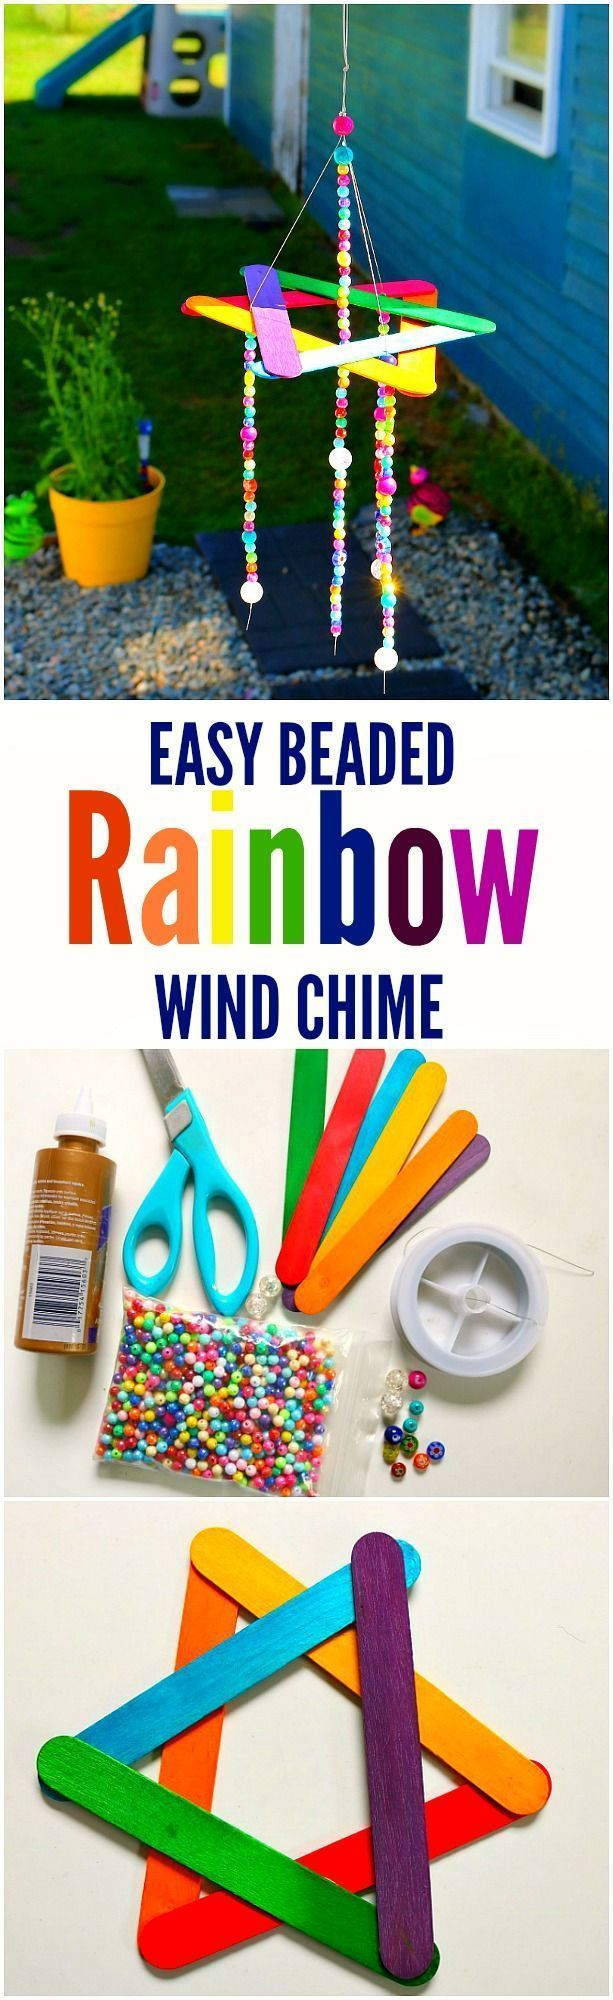 17 best ideas about wind chimes kids on pinterest easy for Wind chime craft projects